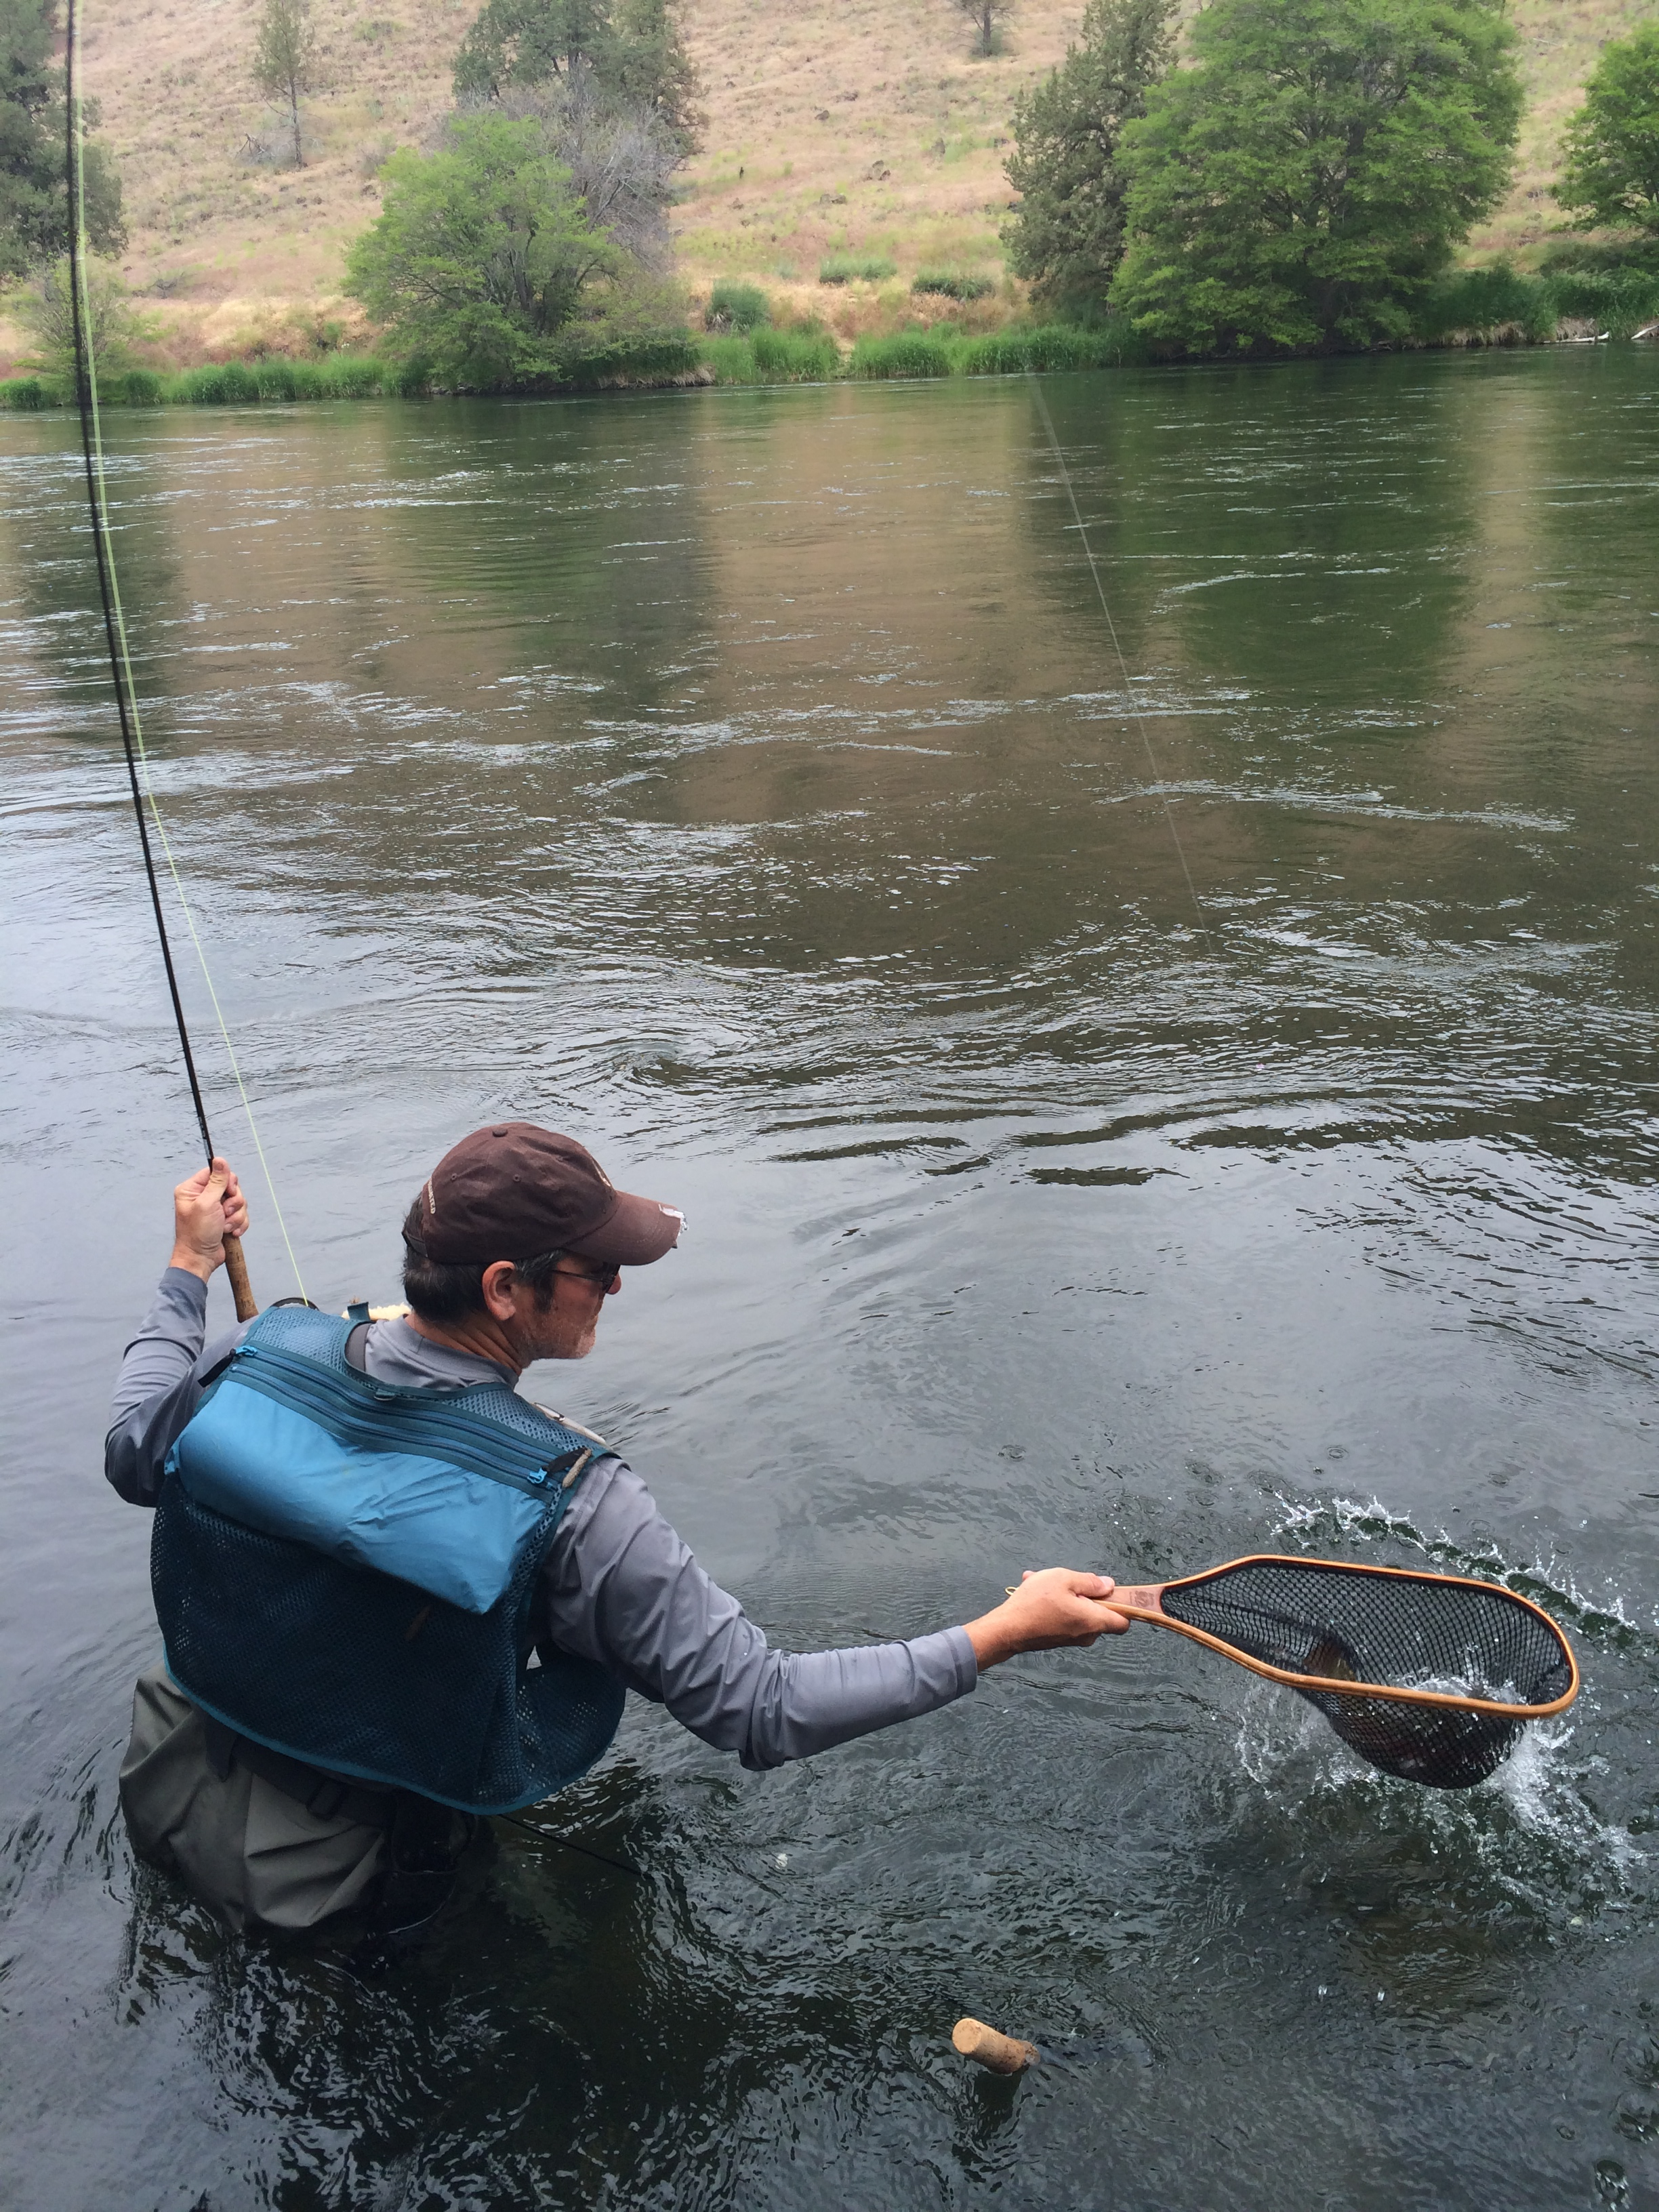 A classic moment in fly fishing.